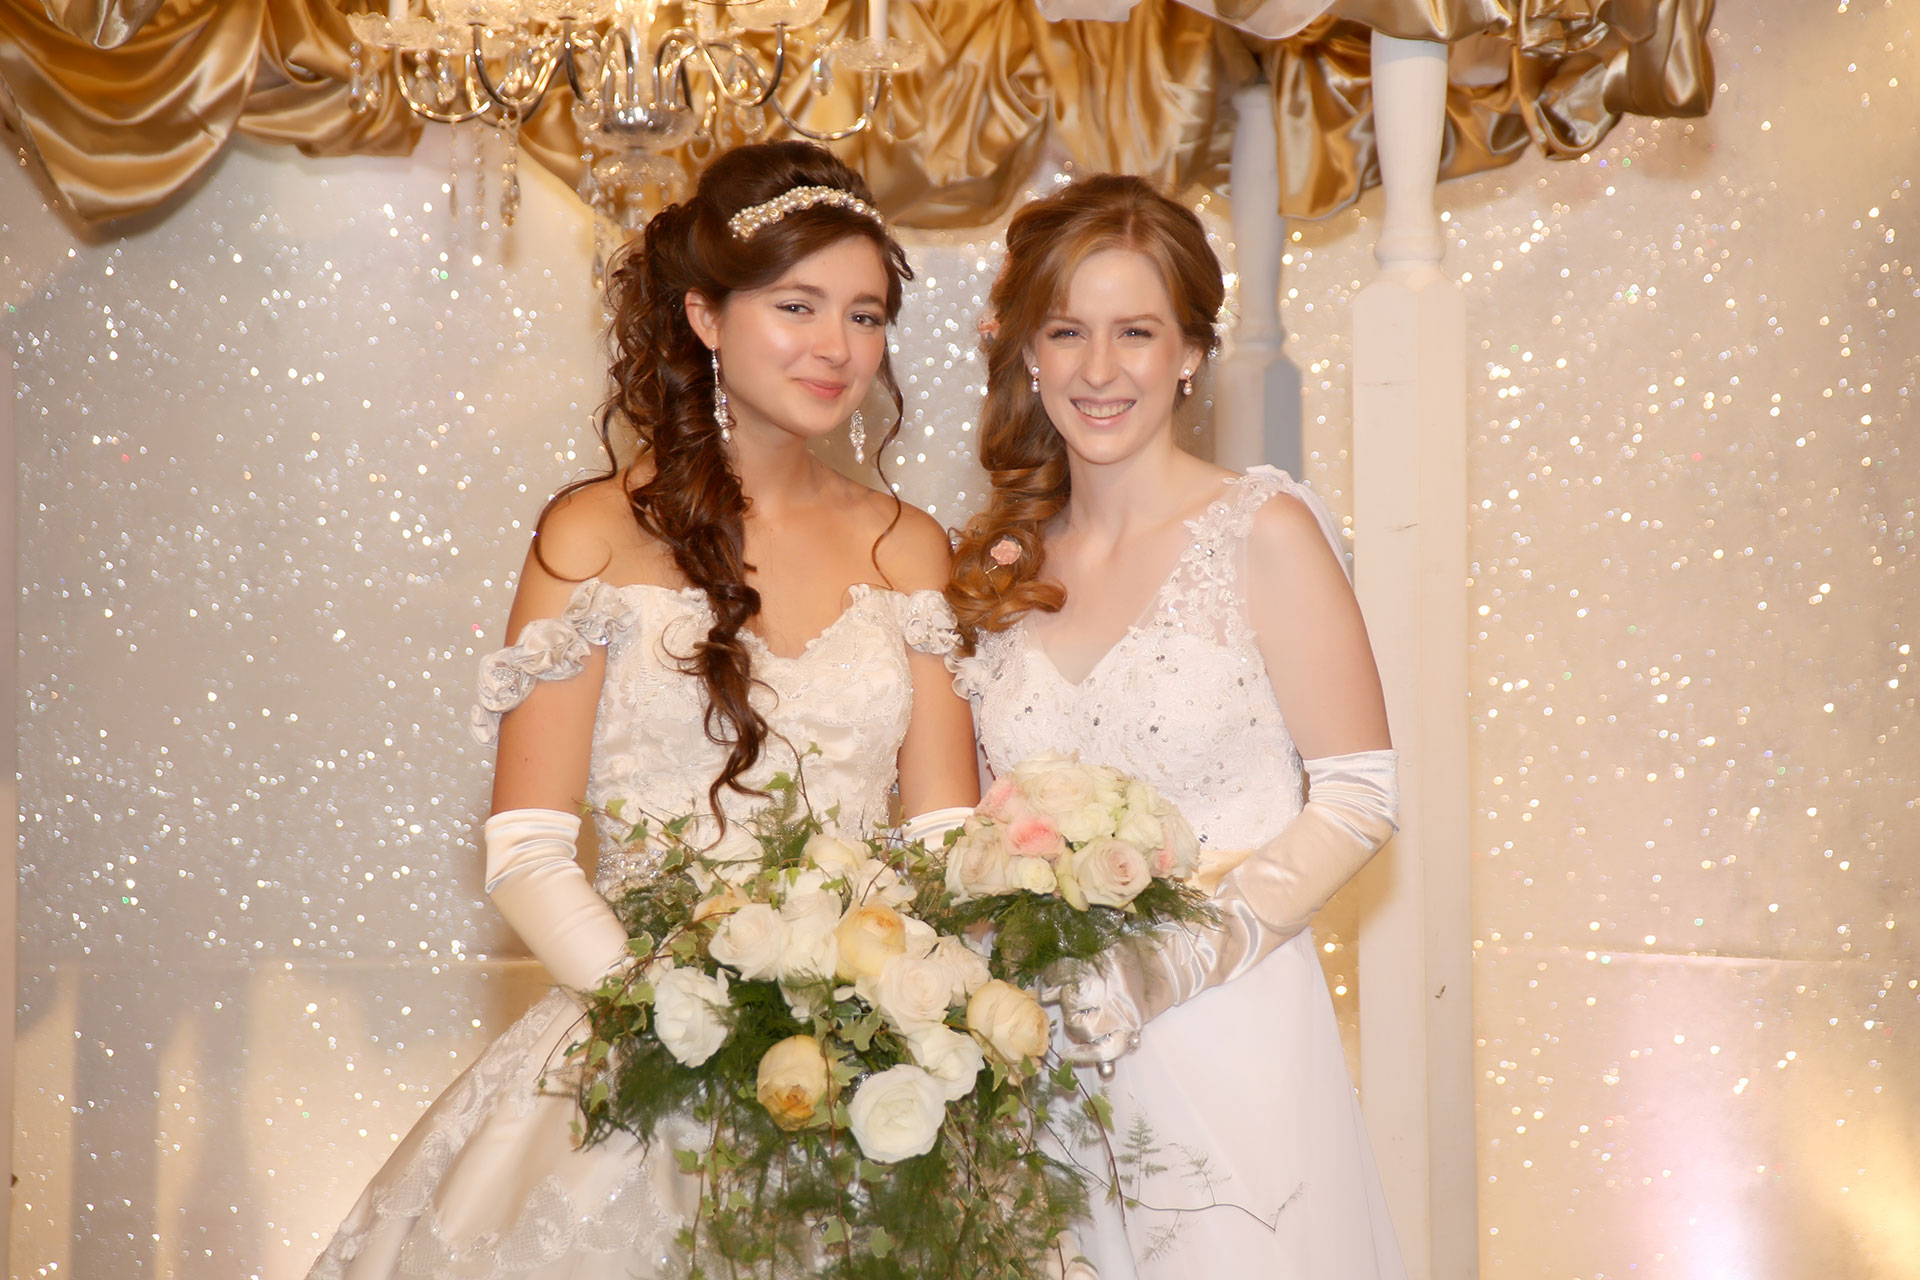 Remnant-Fellowship-Olivas-Bride-Hairstyle